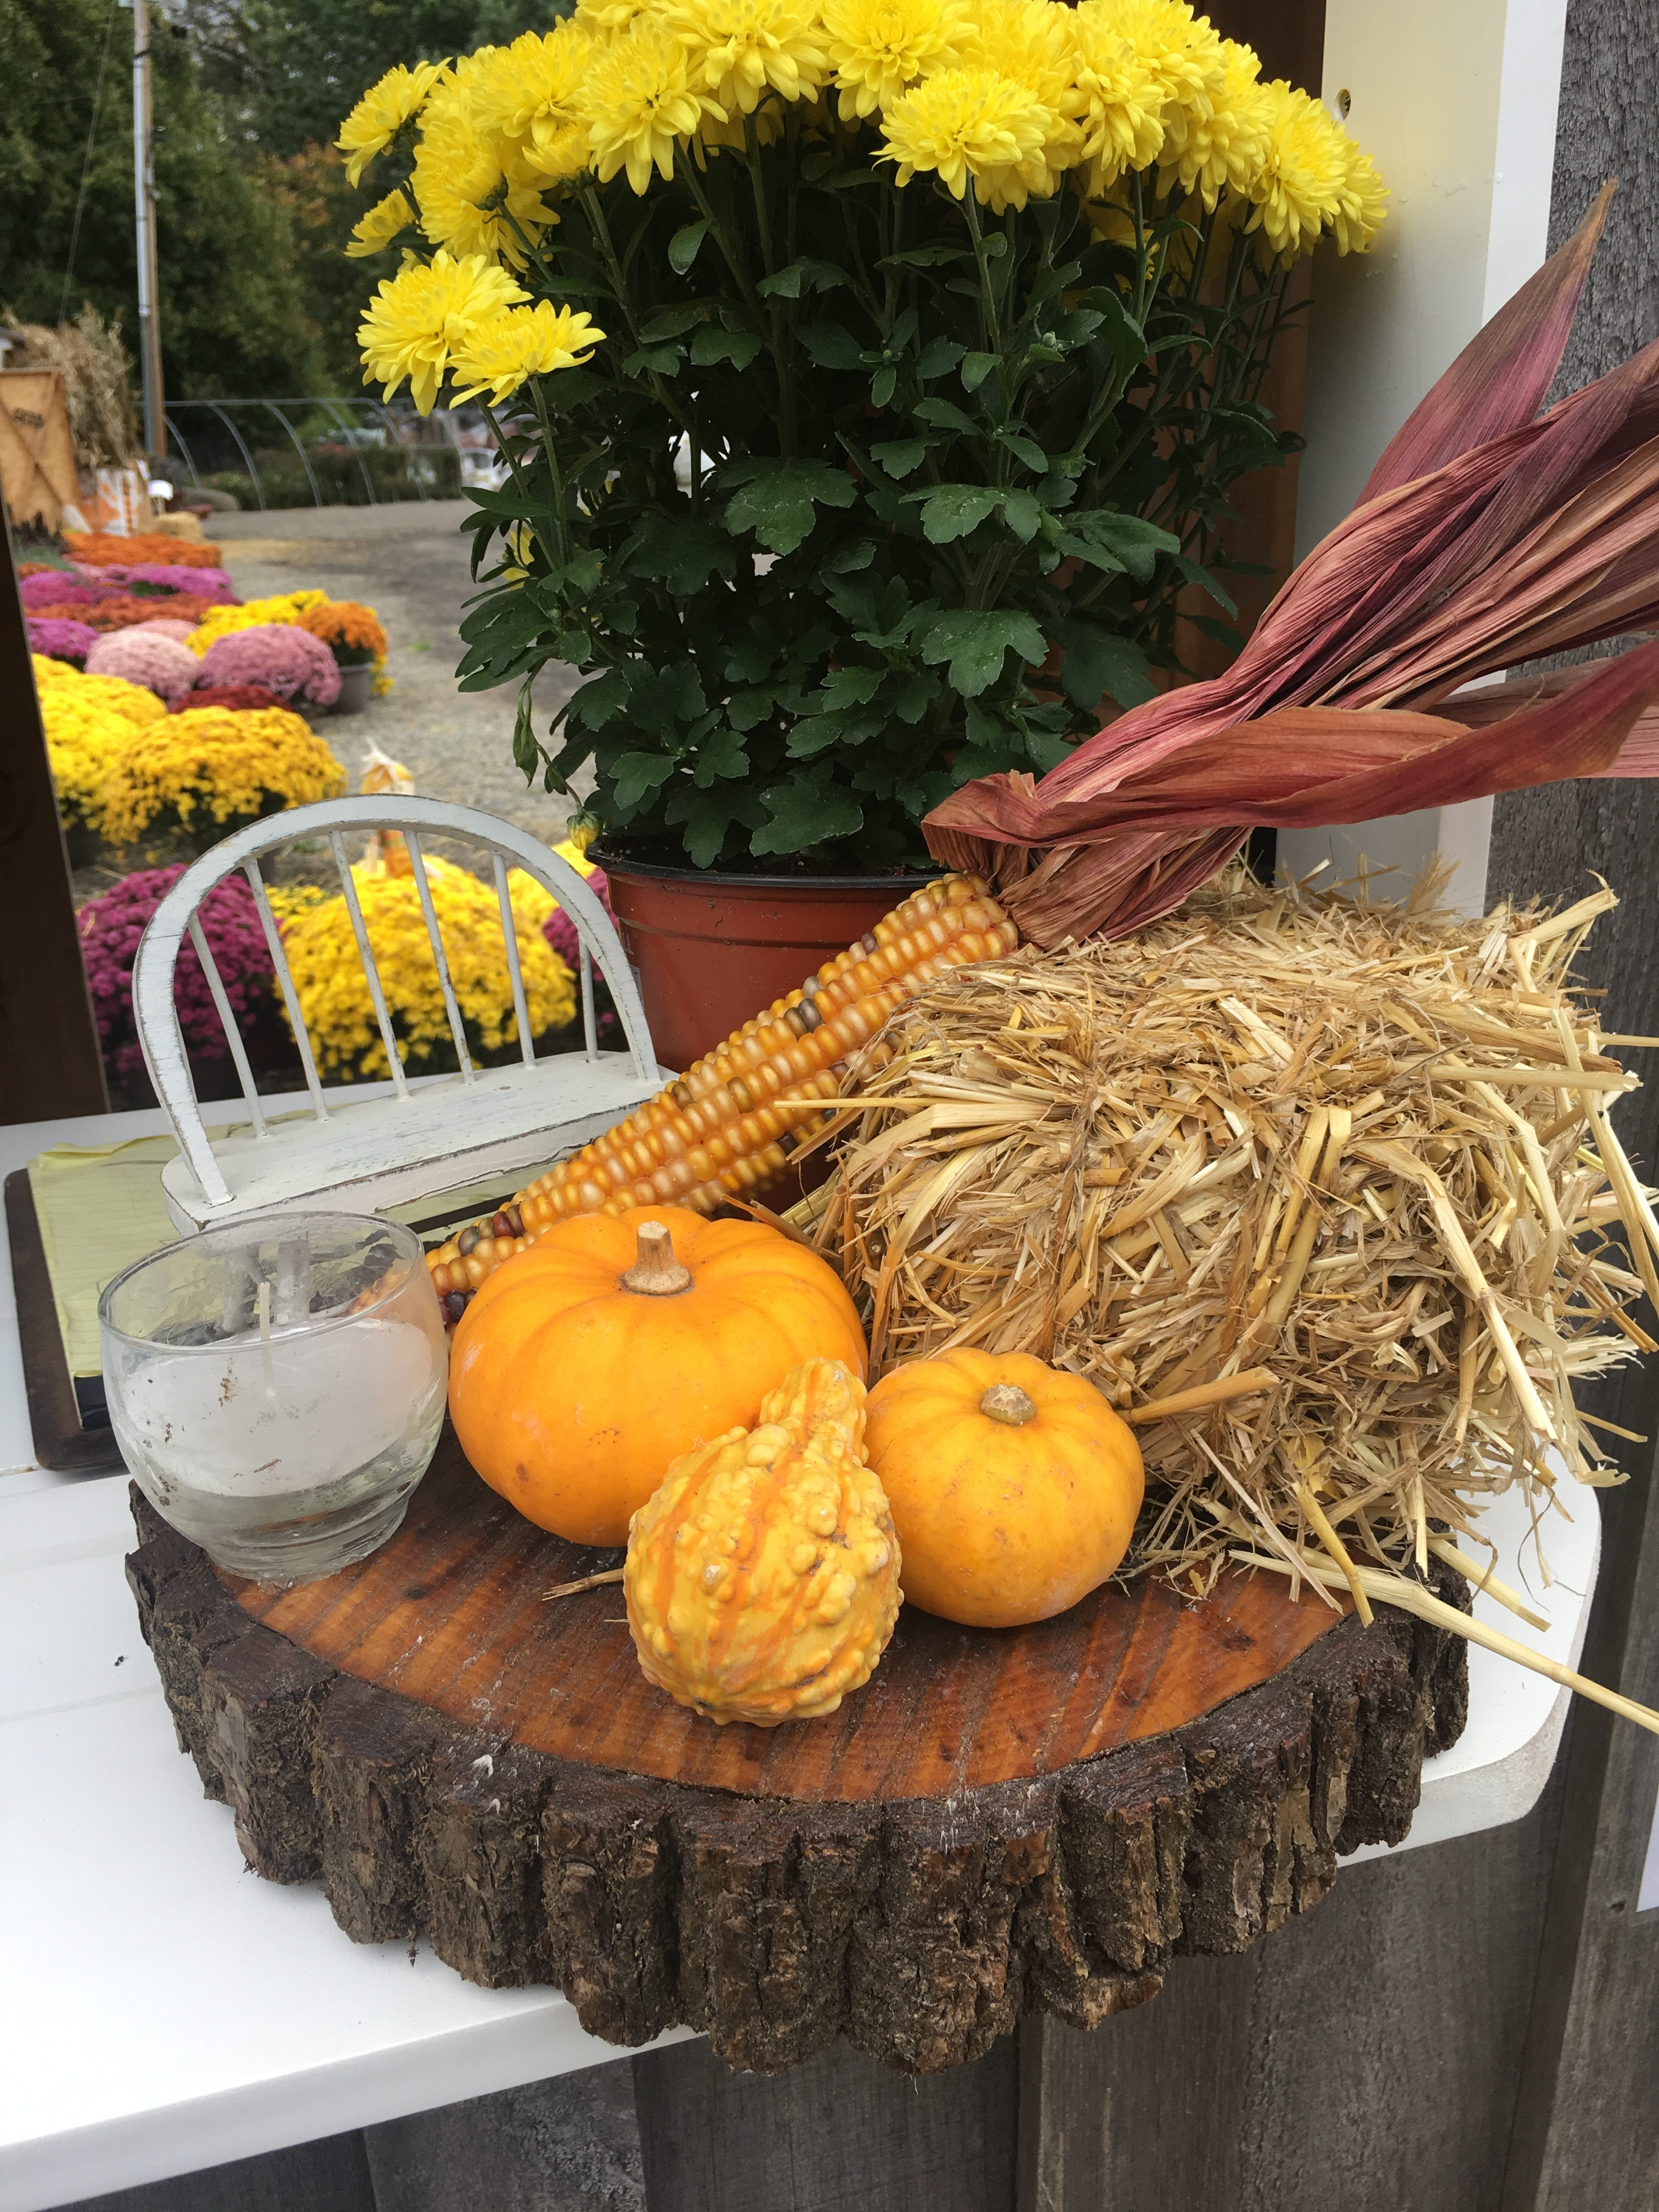 Handmade Fall Decor for sale! It's perfect for a fall table display!